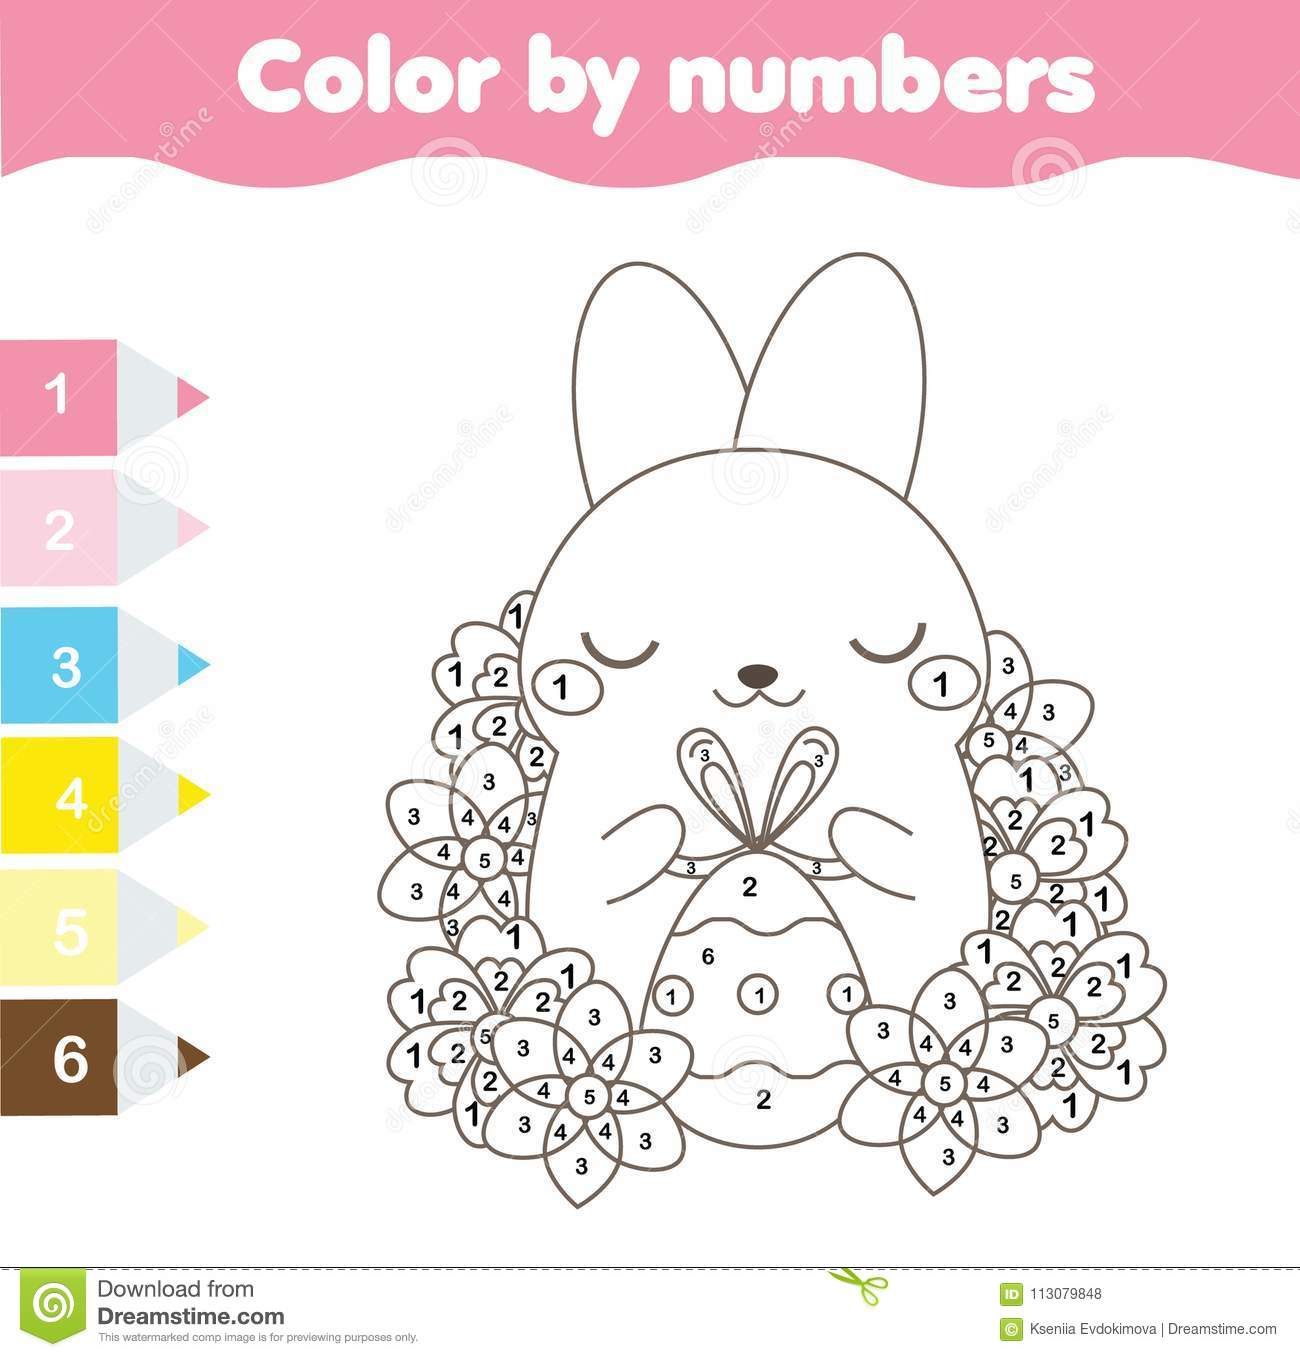 Easter Coloring Page Color By Numbers Printable Worksheet Cute Easter Rabbit With Egg Educational Game For Children Toddlers Stock Vector Illustration Of Babies Game 113079848